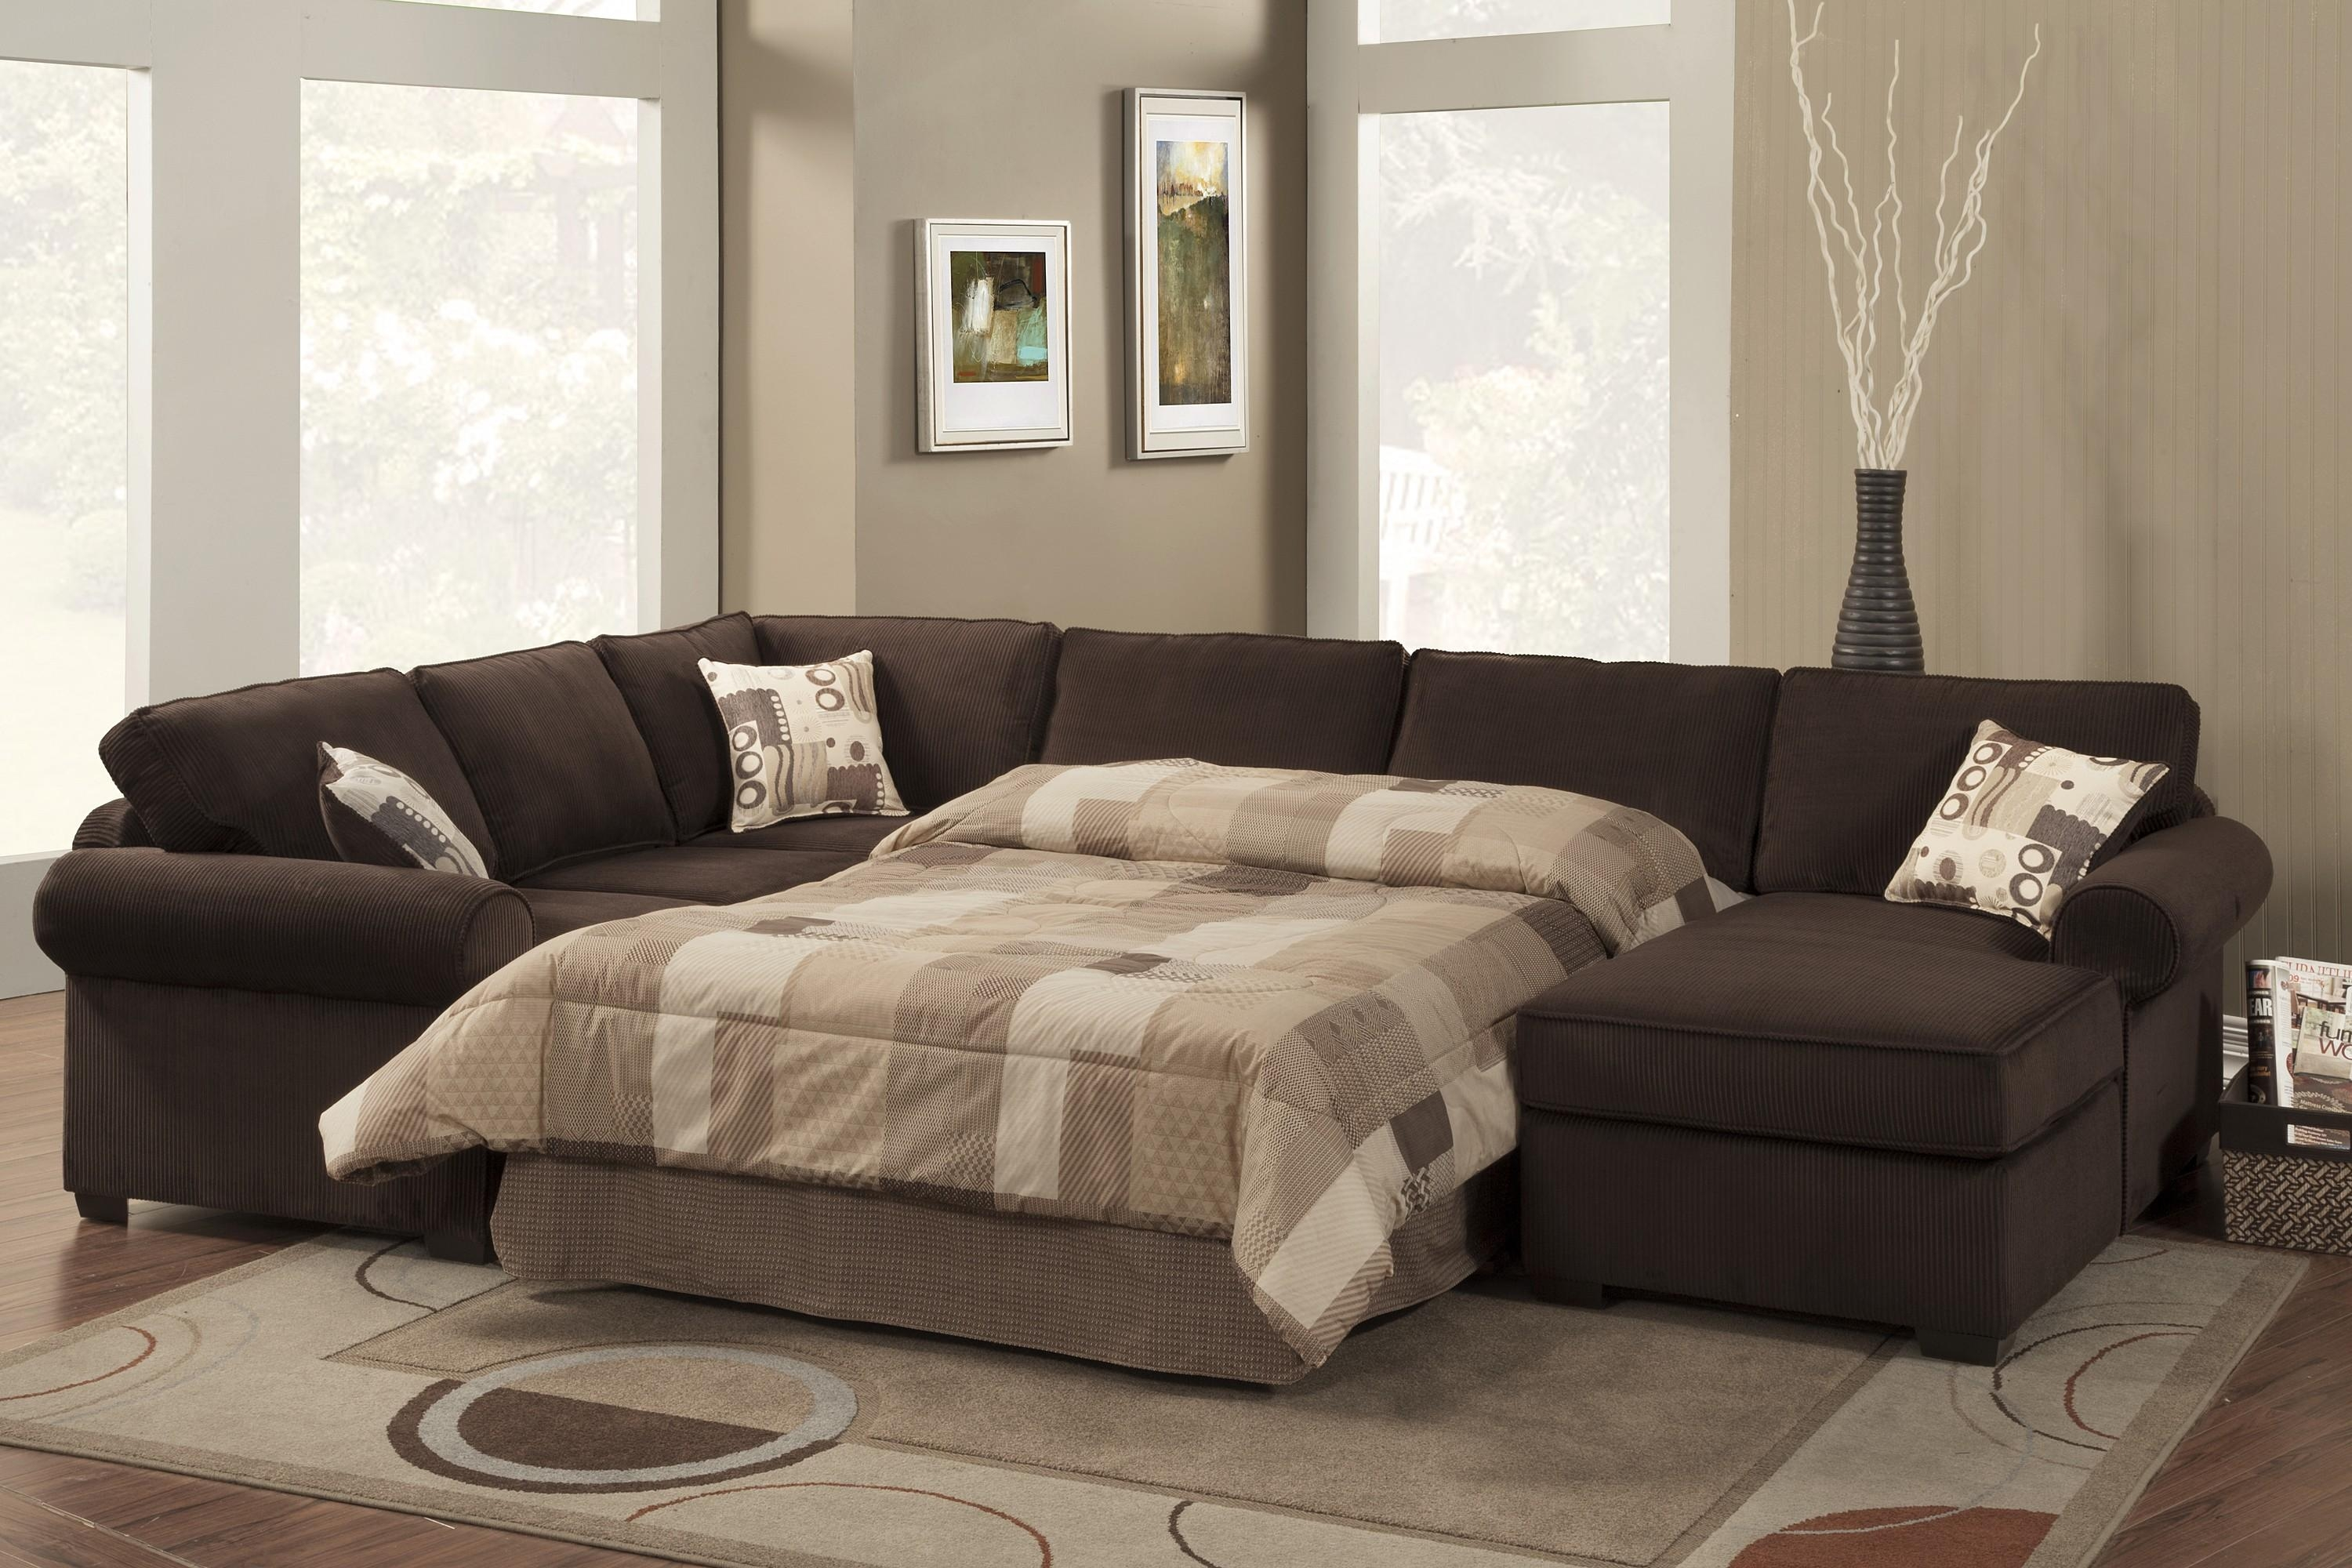 Sectional Sofa With Recliner And Sleeper | Tehranmix Decoration with regard to Sectional With Recliner And Sleeper